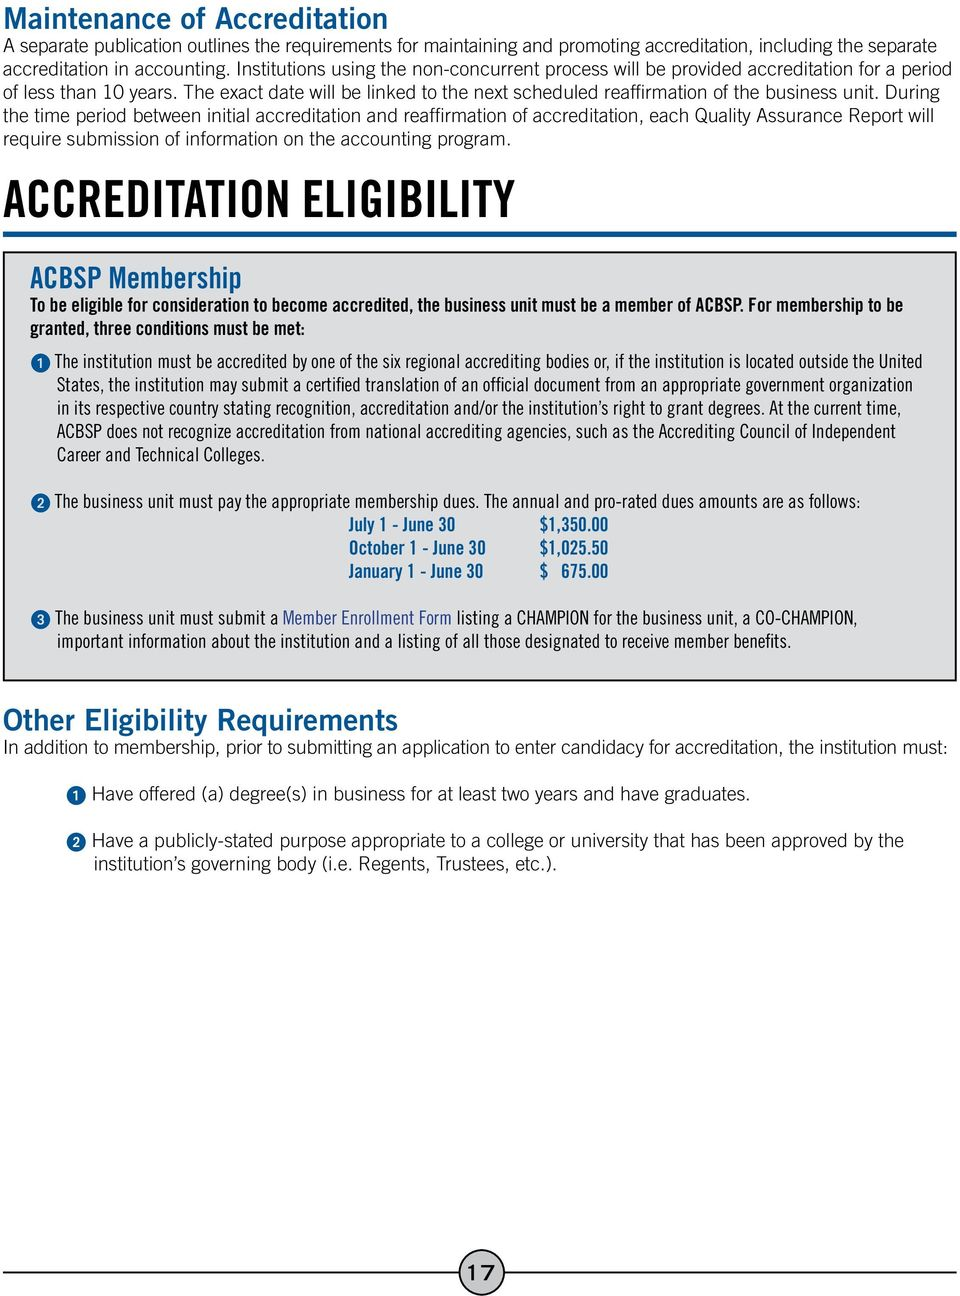 During the time period between initial accreditation and reaffirmation of accreditation, each Quality Assurance Report will require submission of information on the accounting program.